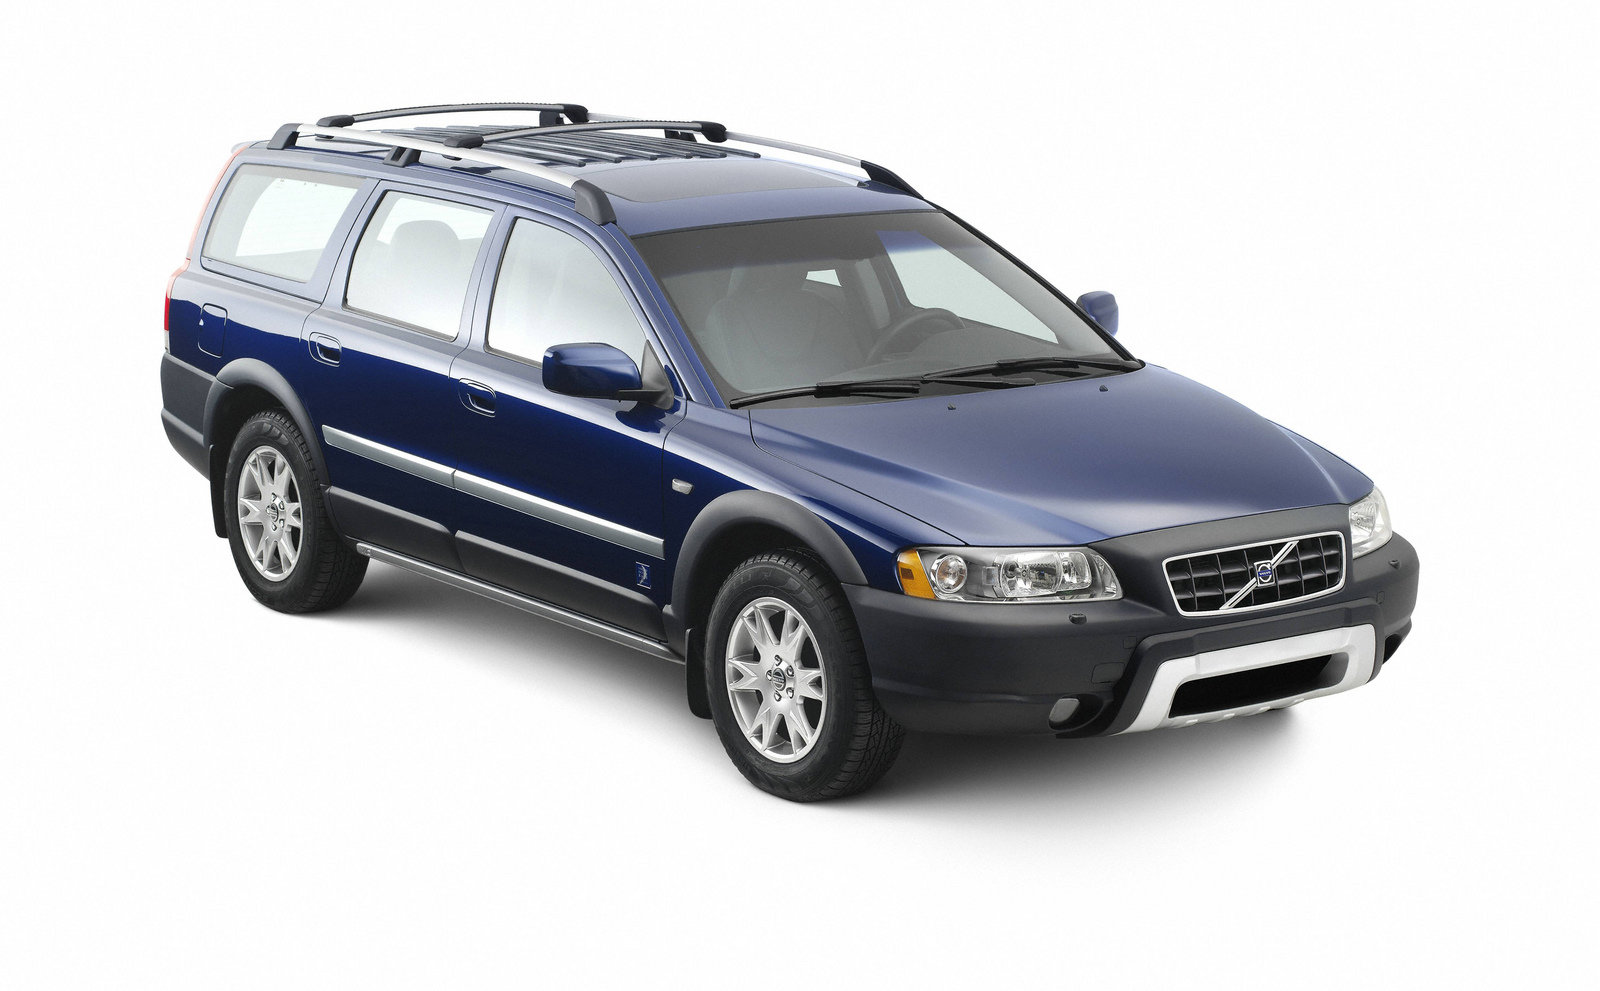 find road test on the 2014 volvo xc70